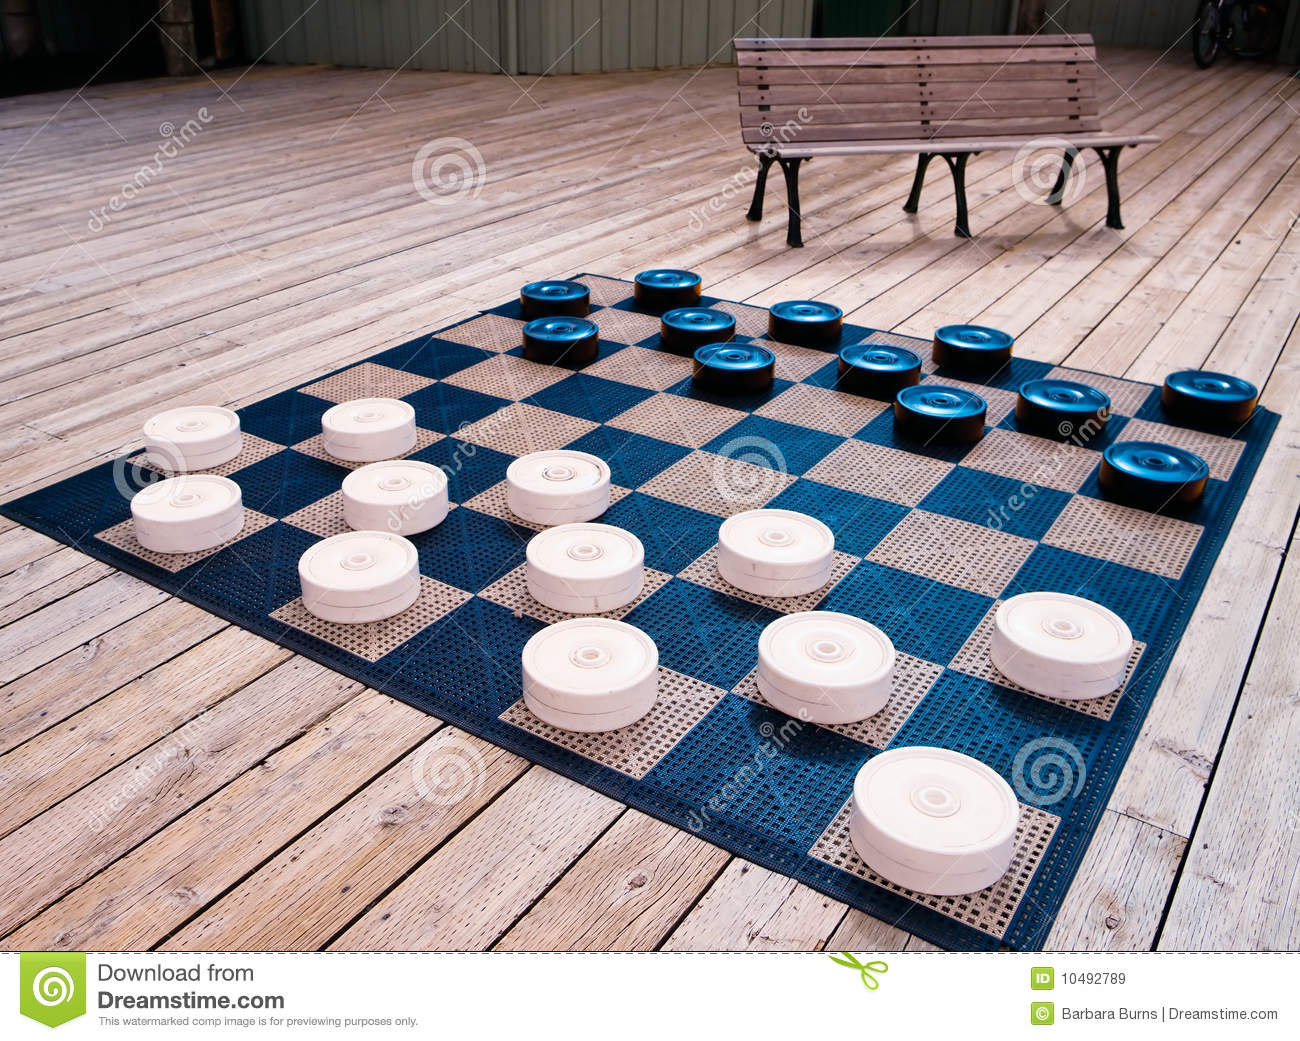 Checkers Anyone? Royalty Free Stock Images - Image: 10492789